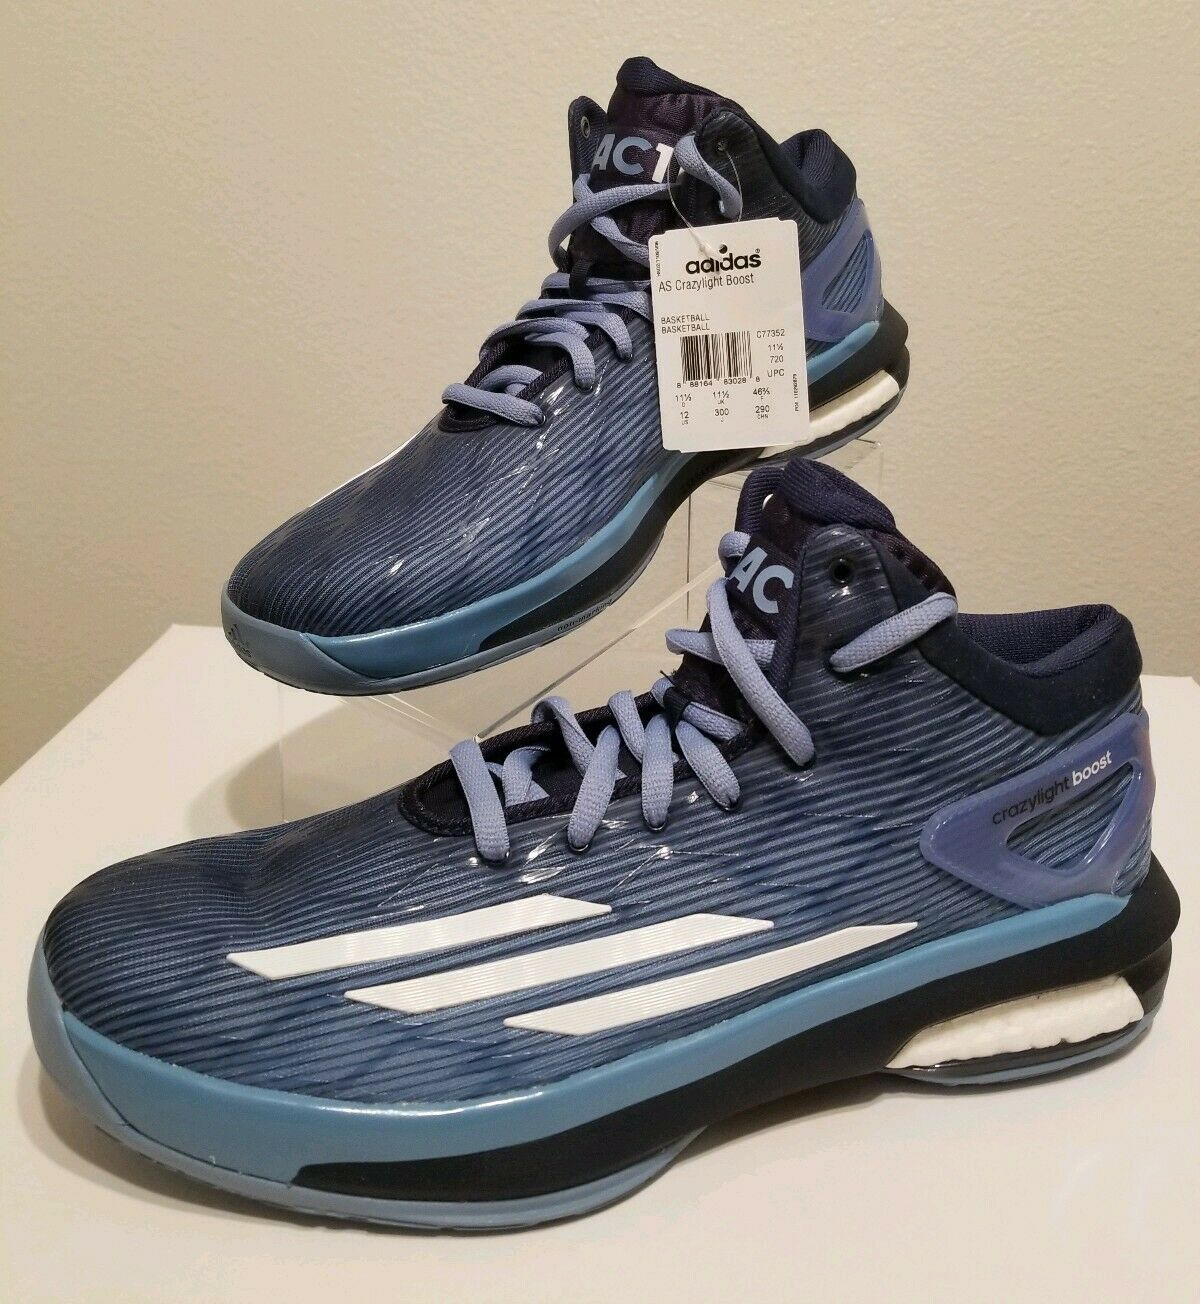 Adidas Crazylight Boost 'MAC11' Mike Conley Player Edition shoes Sz 12